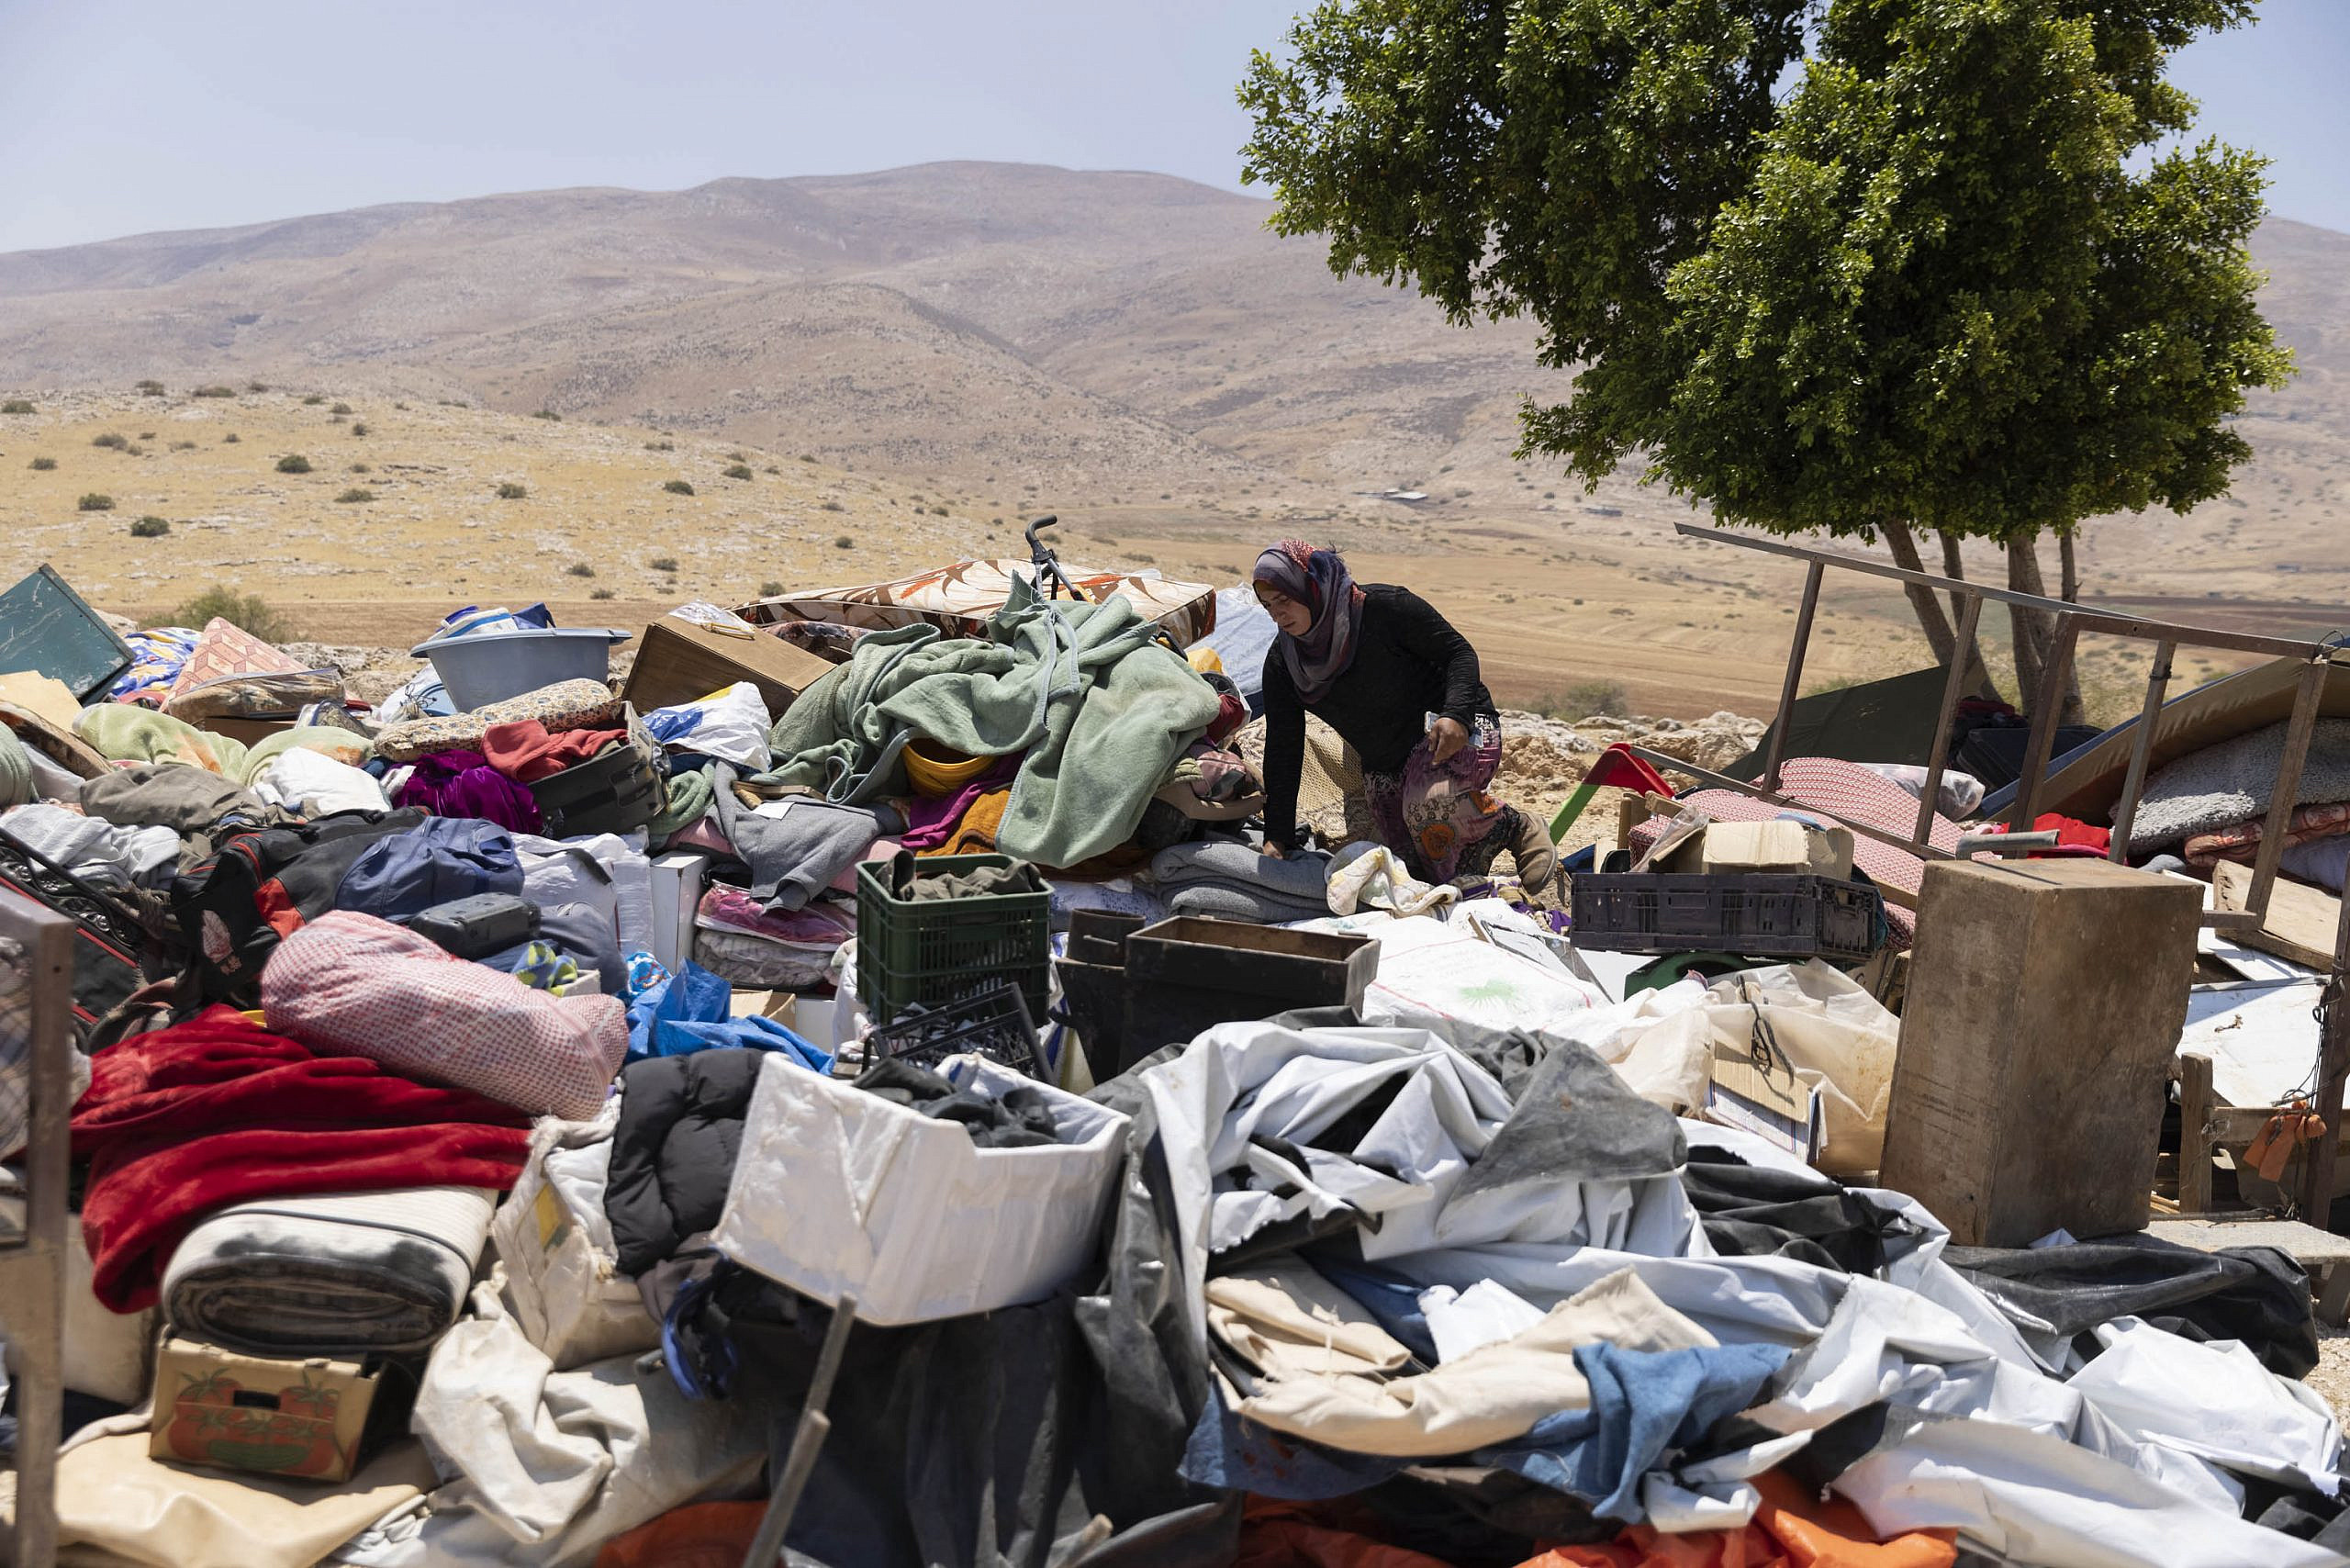 A Palestinian resident of Humsa al-Fuqa sifts through her belongings a day after the Israeli army demolished the entire community in the occupied Jordan Valley, July 8, 2021. (Oren Ziv)